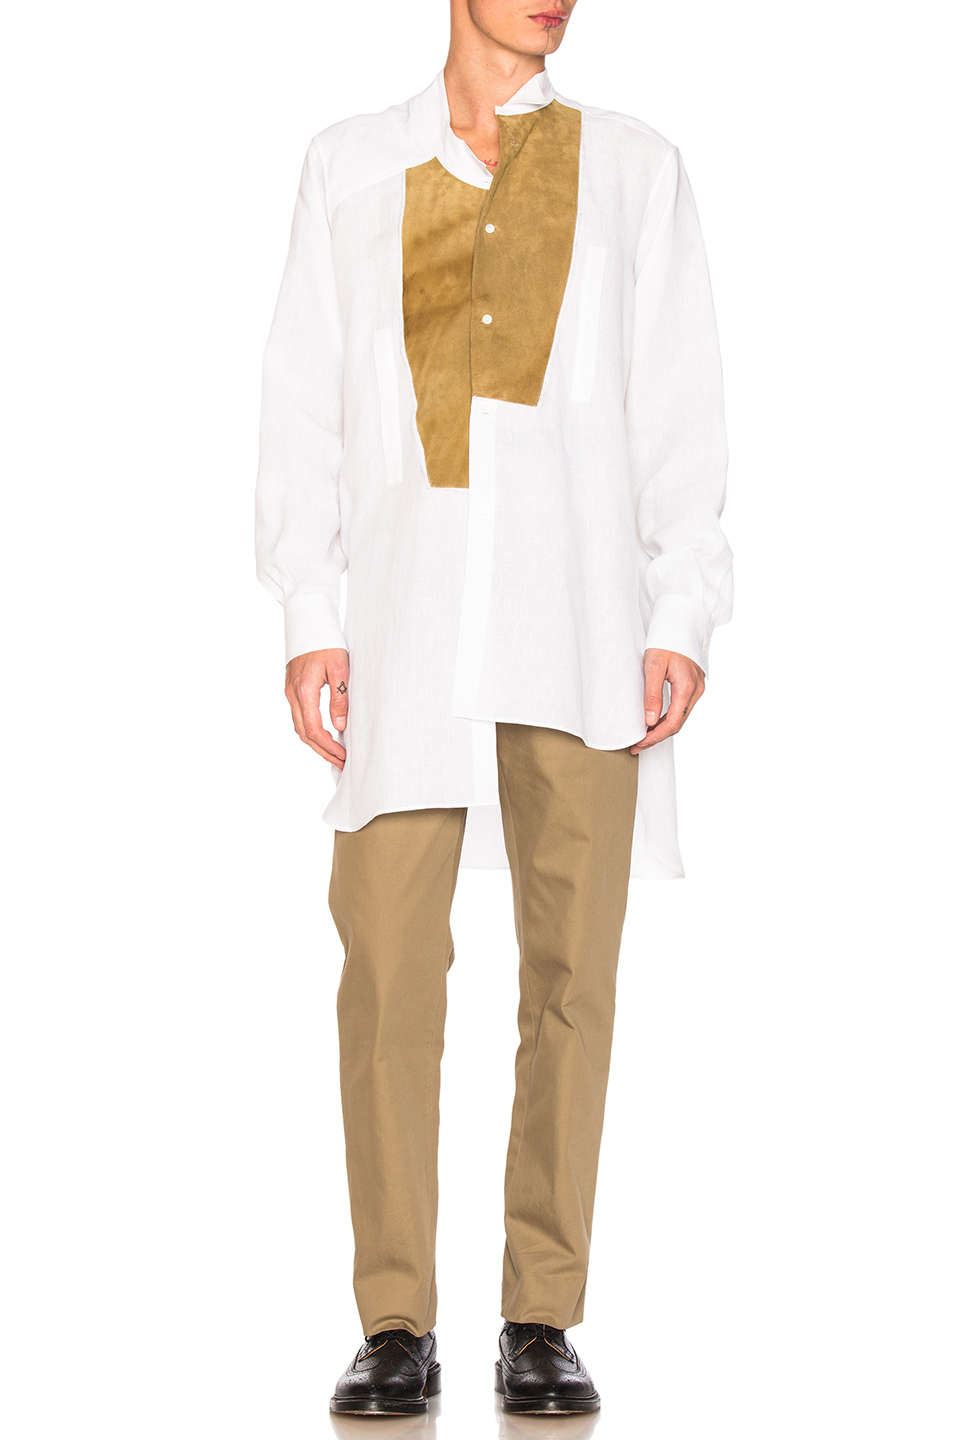 Loewe Leather Placket Shirt in White